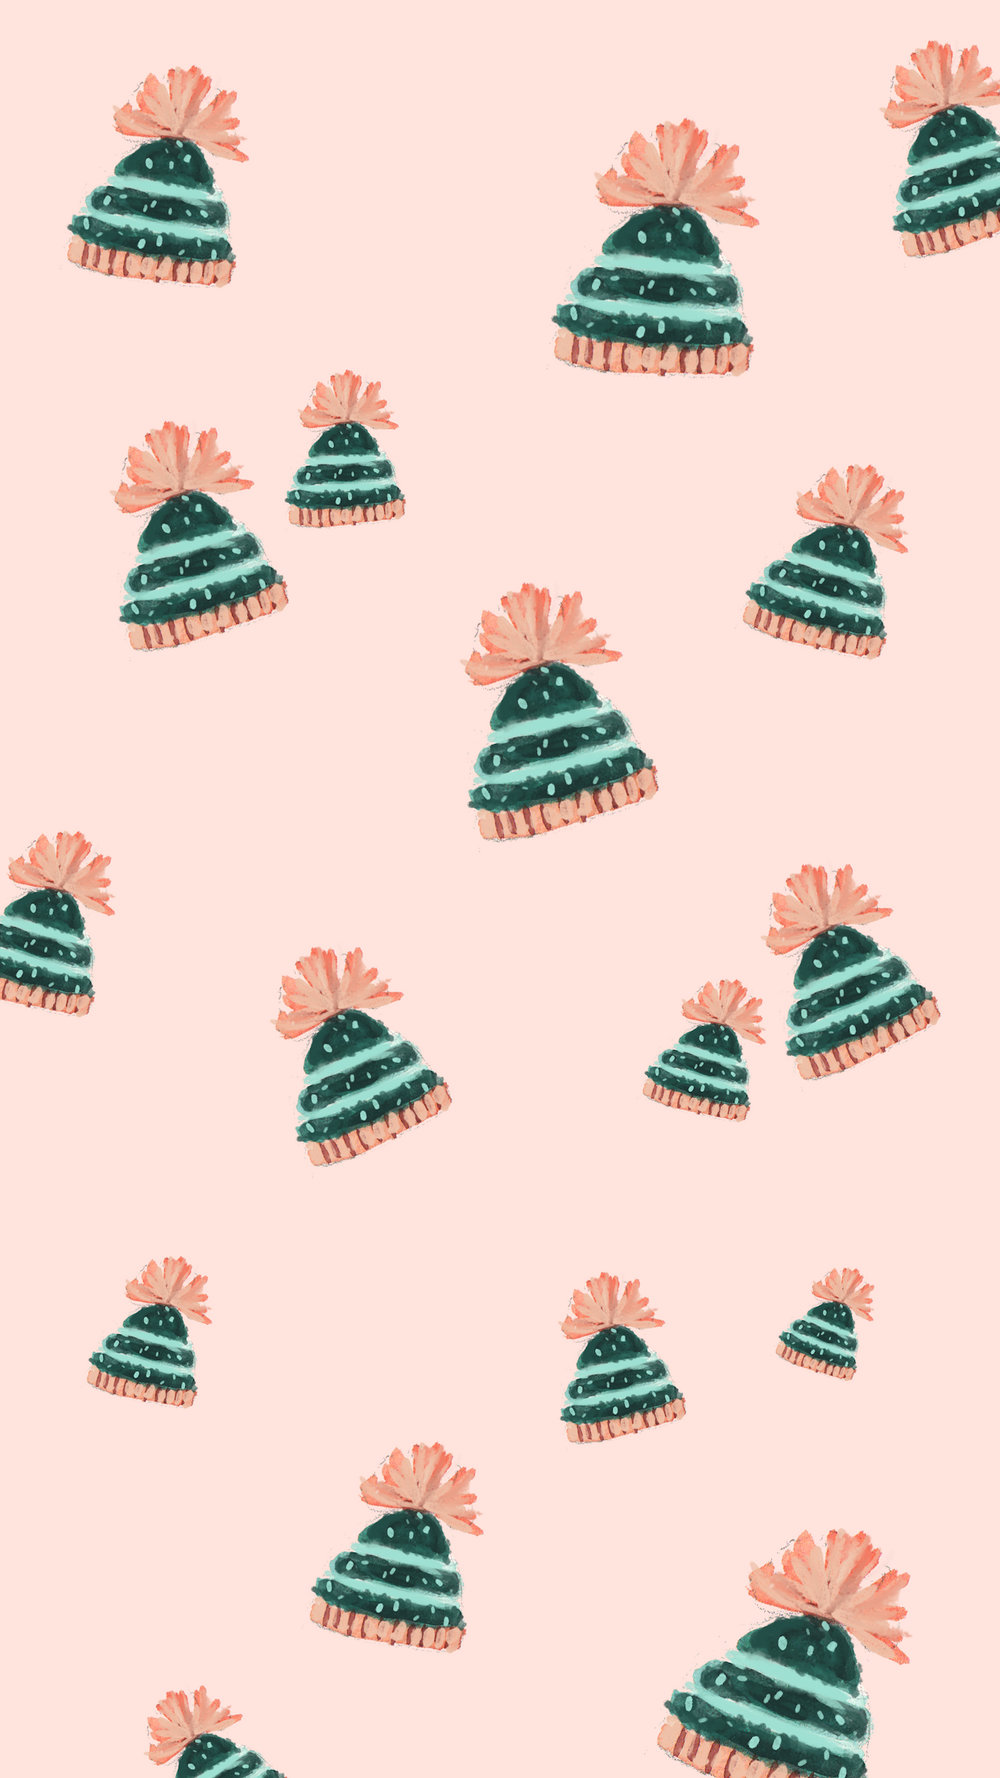 Holiday-Christmas-Winter-Phone-Wallpaper-Background-Hats.jpg